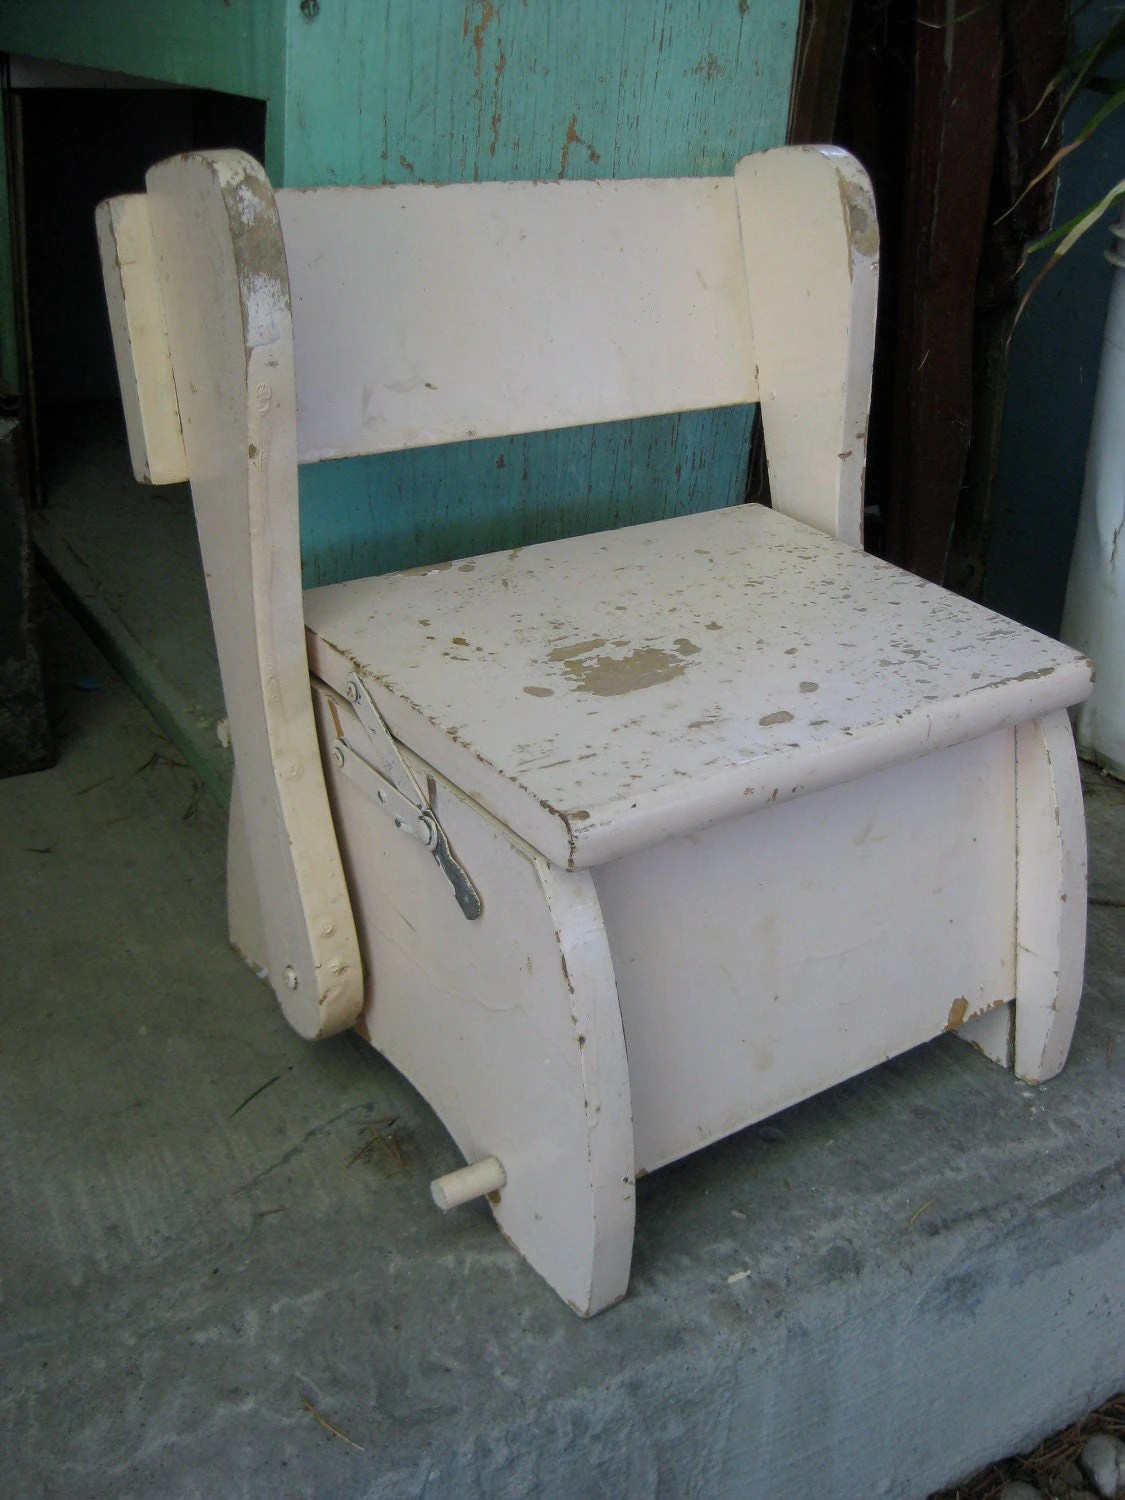 portable potty chair knoll conference room chairs vintage chippy multi use convertible step stool